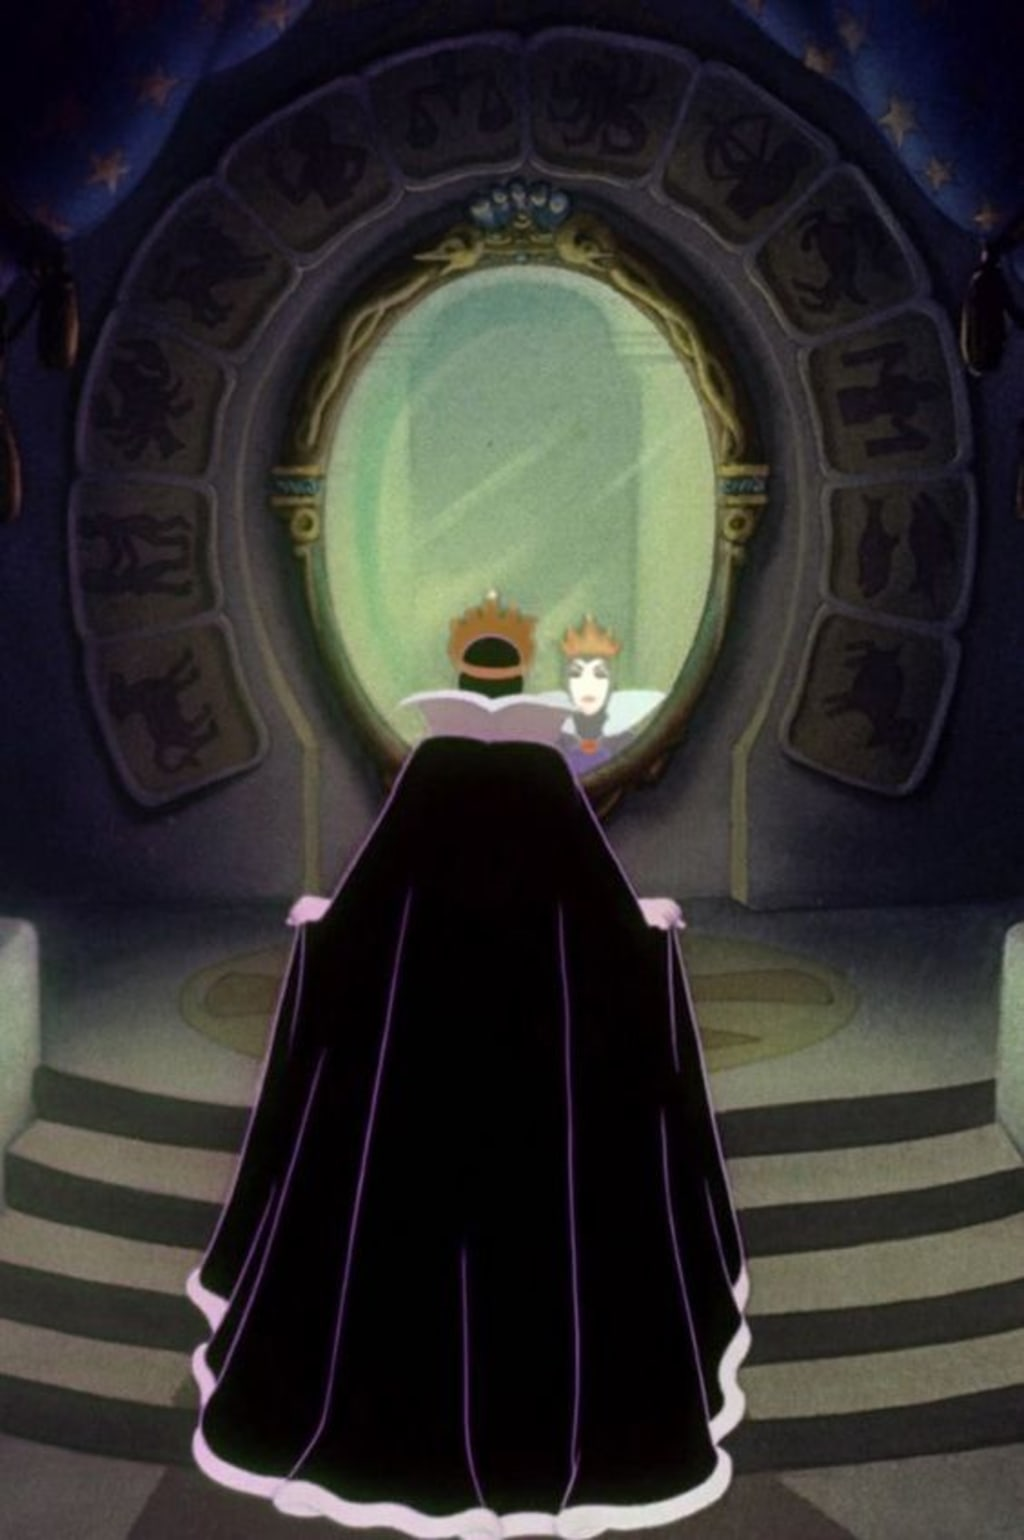 Wicked, Evil, Villainous: Life Lessons from Disney Villains